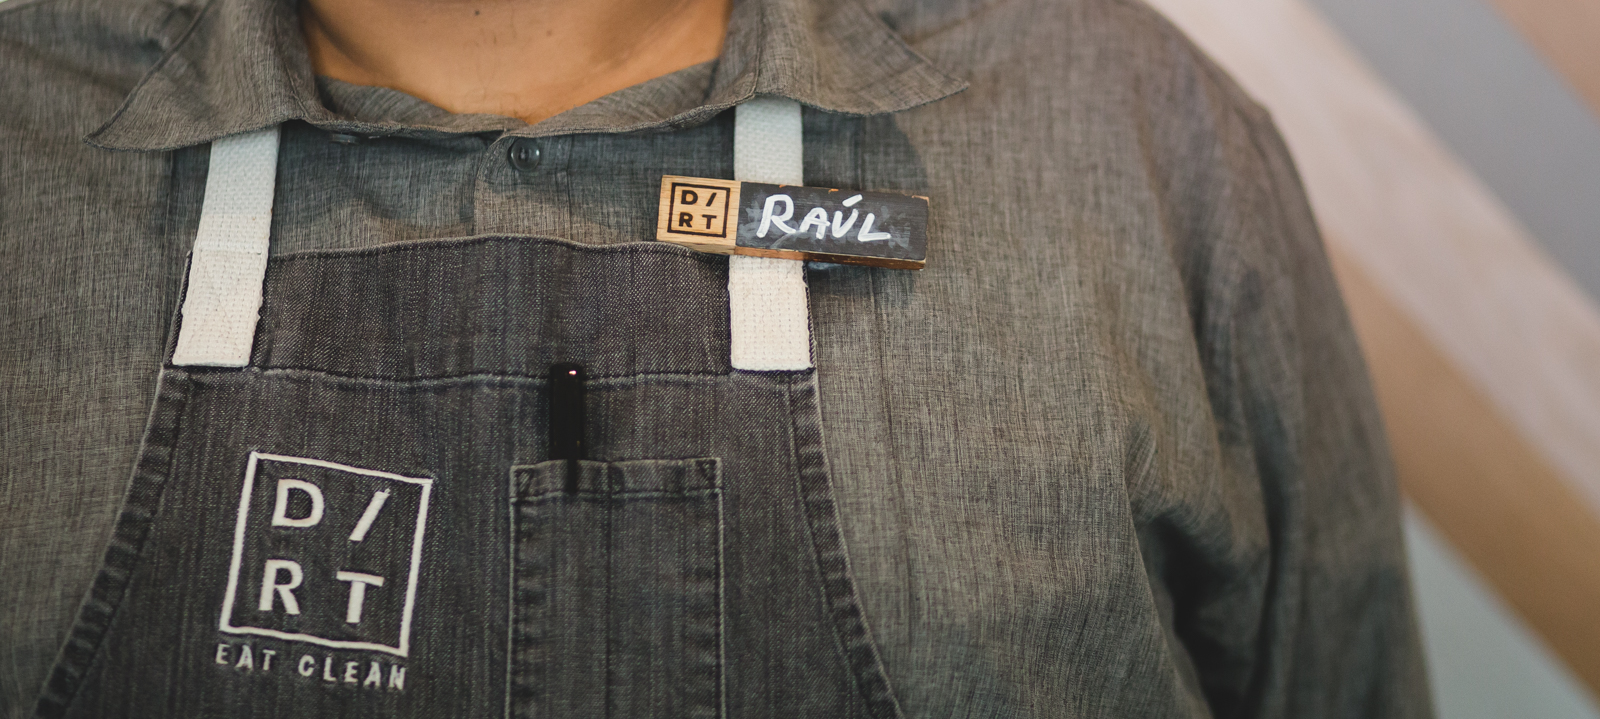 Custom name tags crafted by DUOFAB